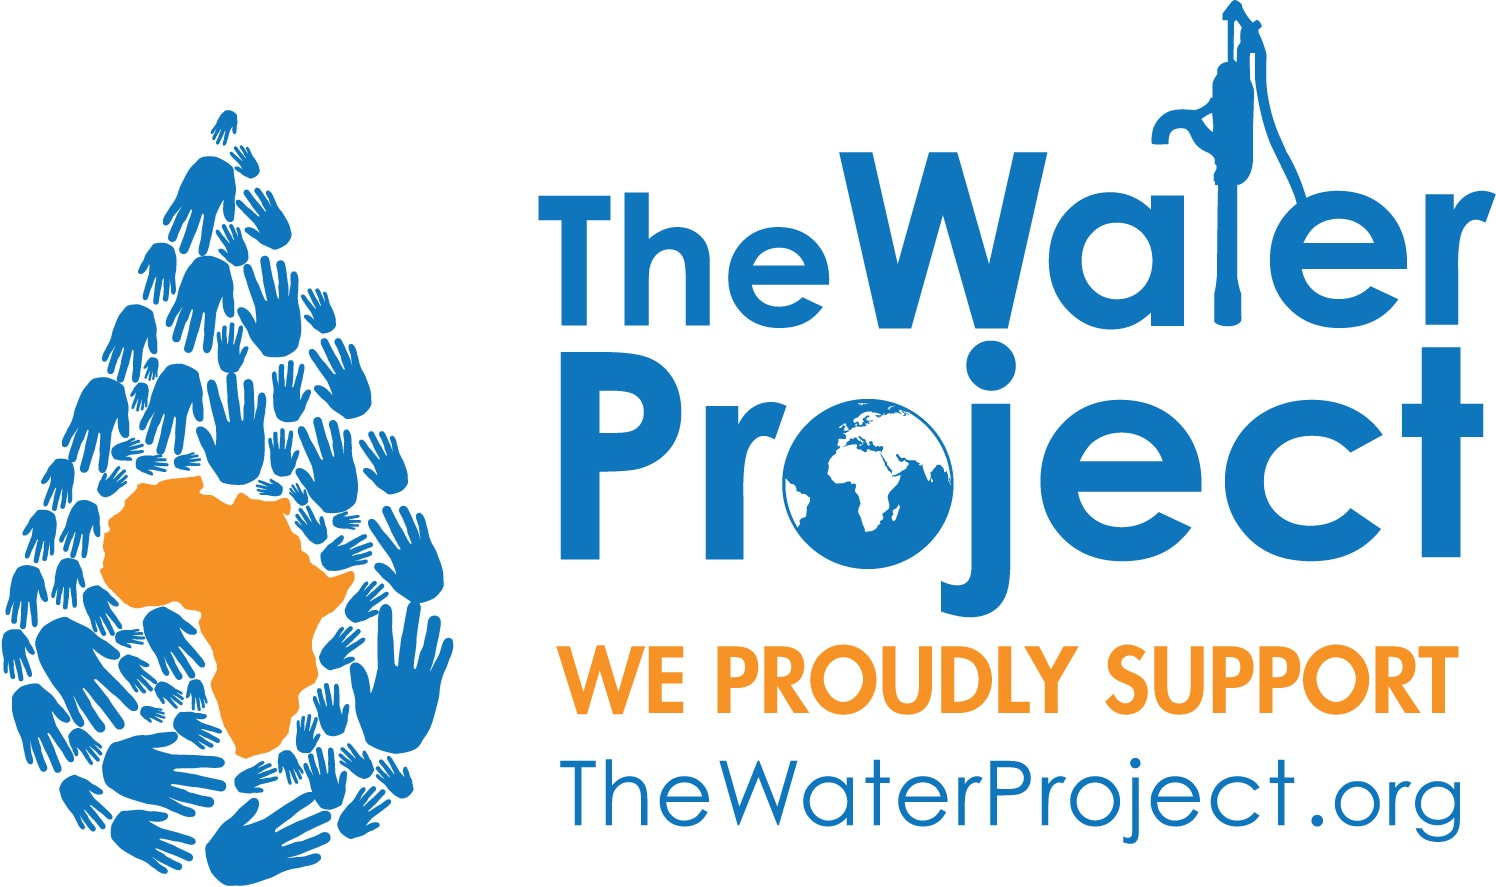 """The Water Project - """"The Water Project, Inc. is a 501(c)(3) non-profit organization unlocking human potential by providing reliable water projects to communities in sub-Saharan Africa who suffer needlessly from a lack of access to clean water and proper sanitation"""" (The Water Project)."""